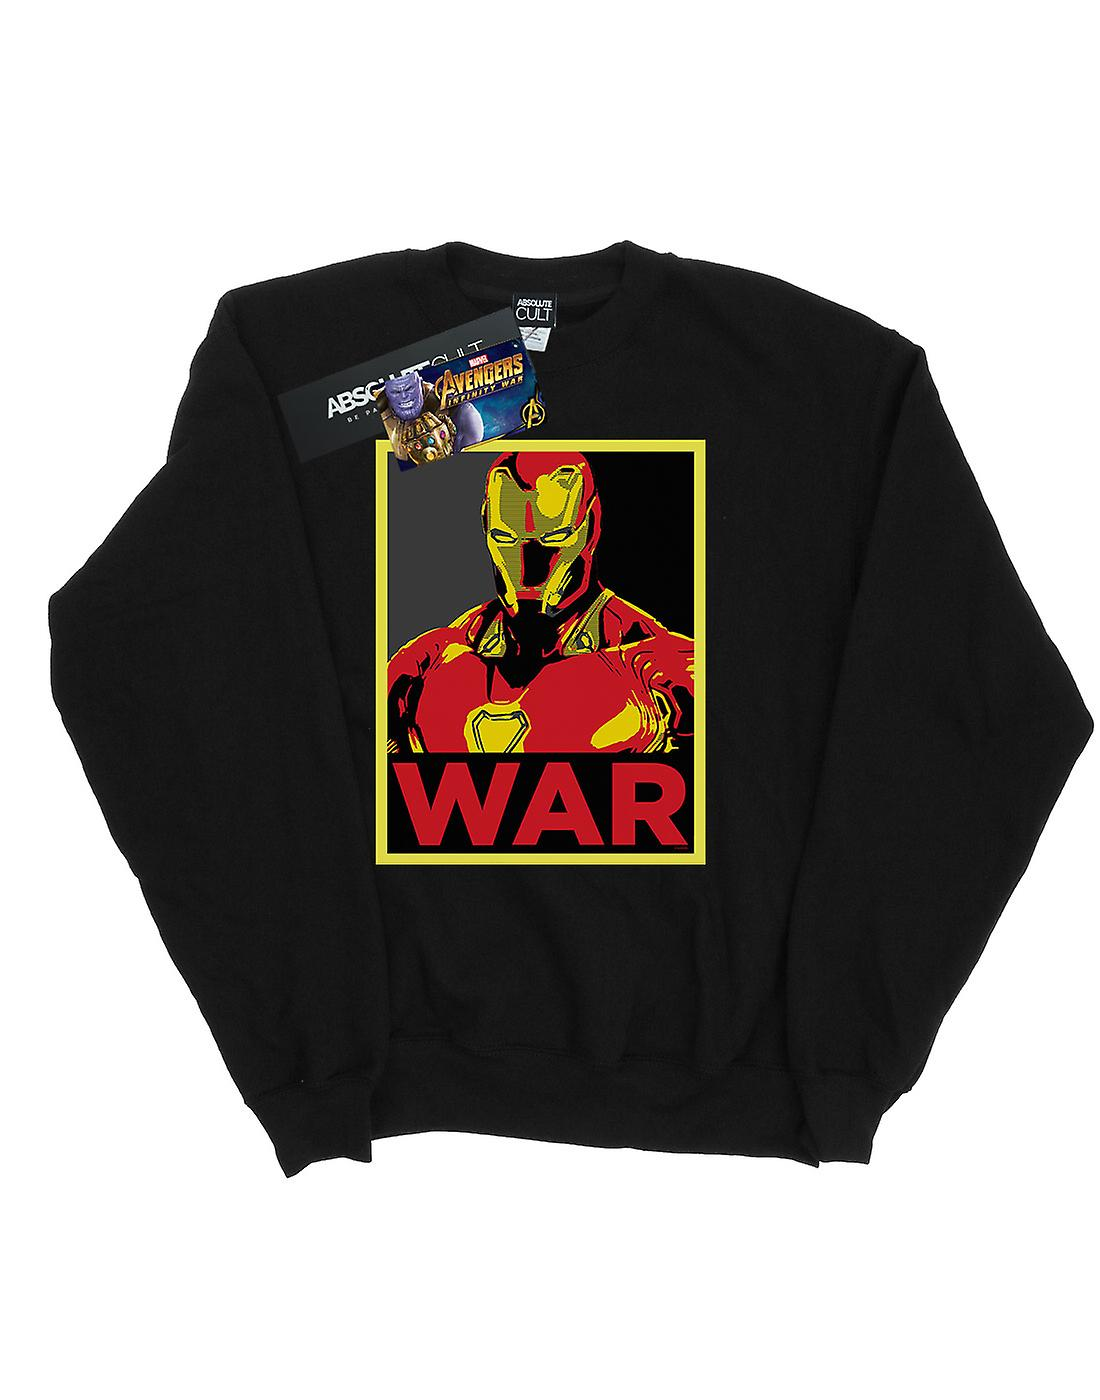 Marvel Women's Avengers Infinity War Iron Man War Sweatshirt